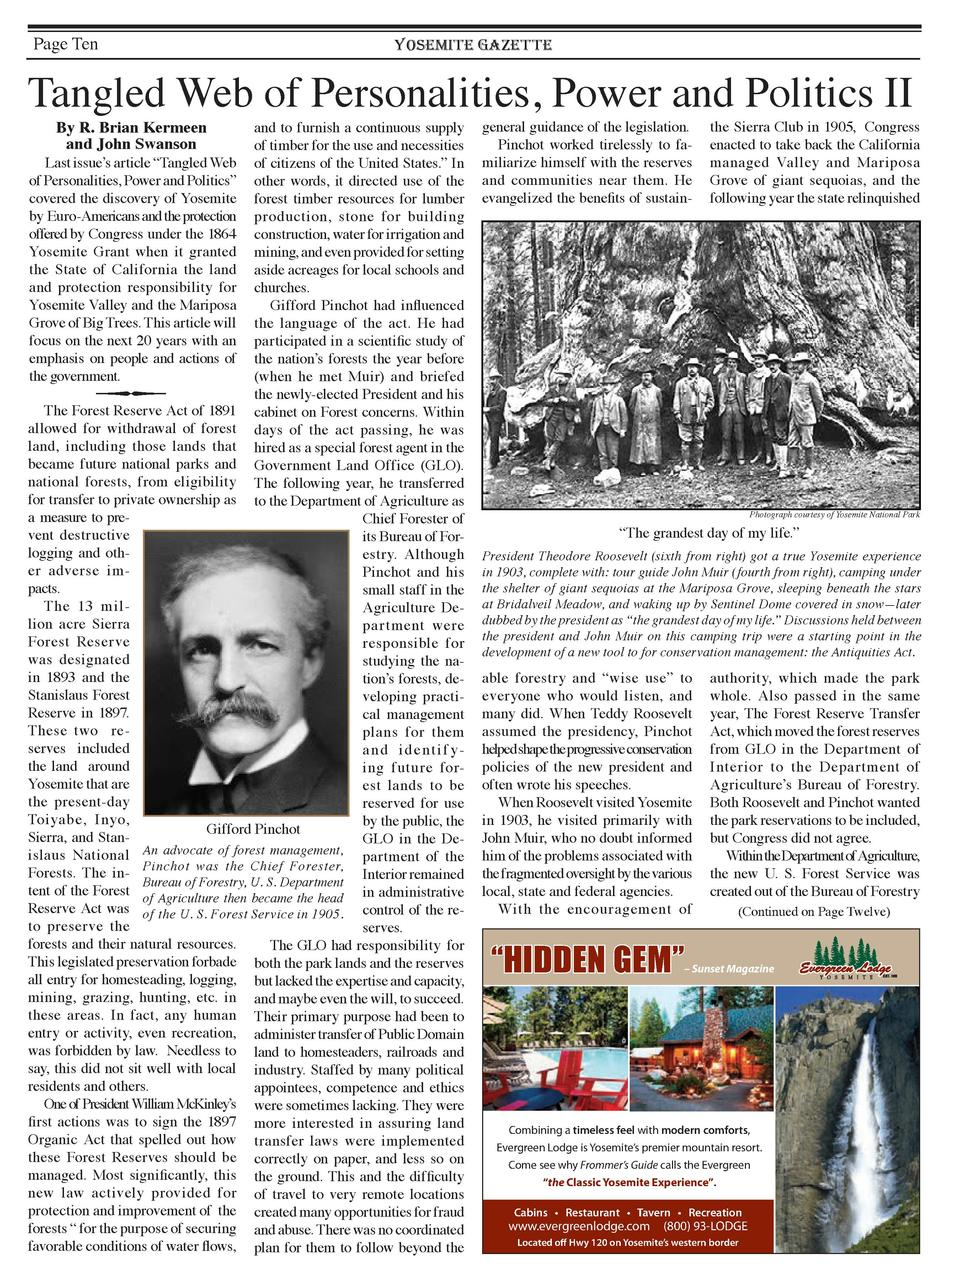 Page Ten  YOSEMITE GAZETTE  Tangled Web of Personalities, Power and Politics II By R. Brian Kermeen and John Swanson  and ...